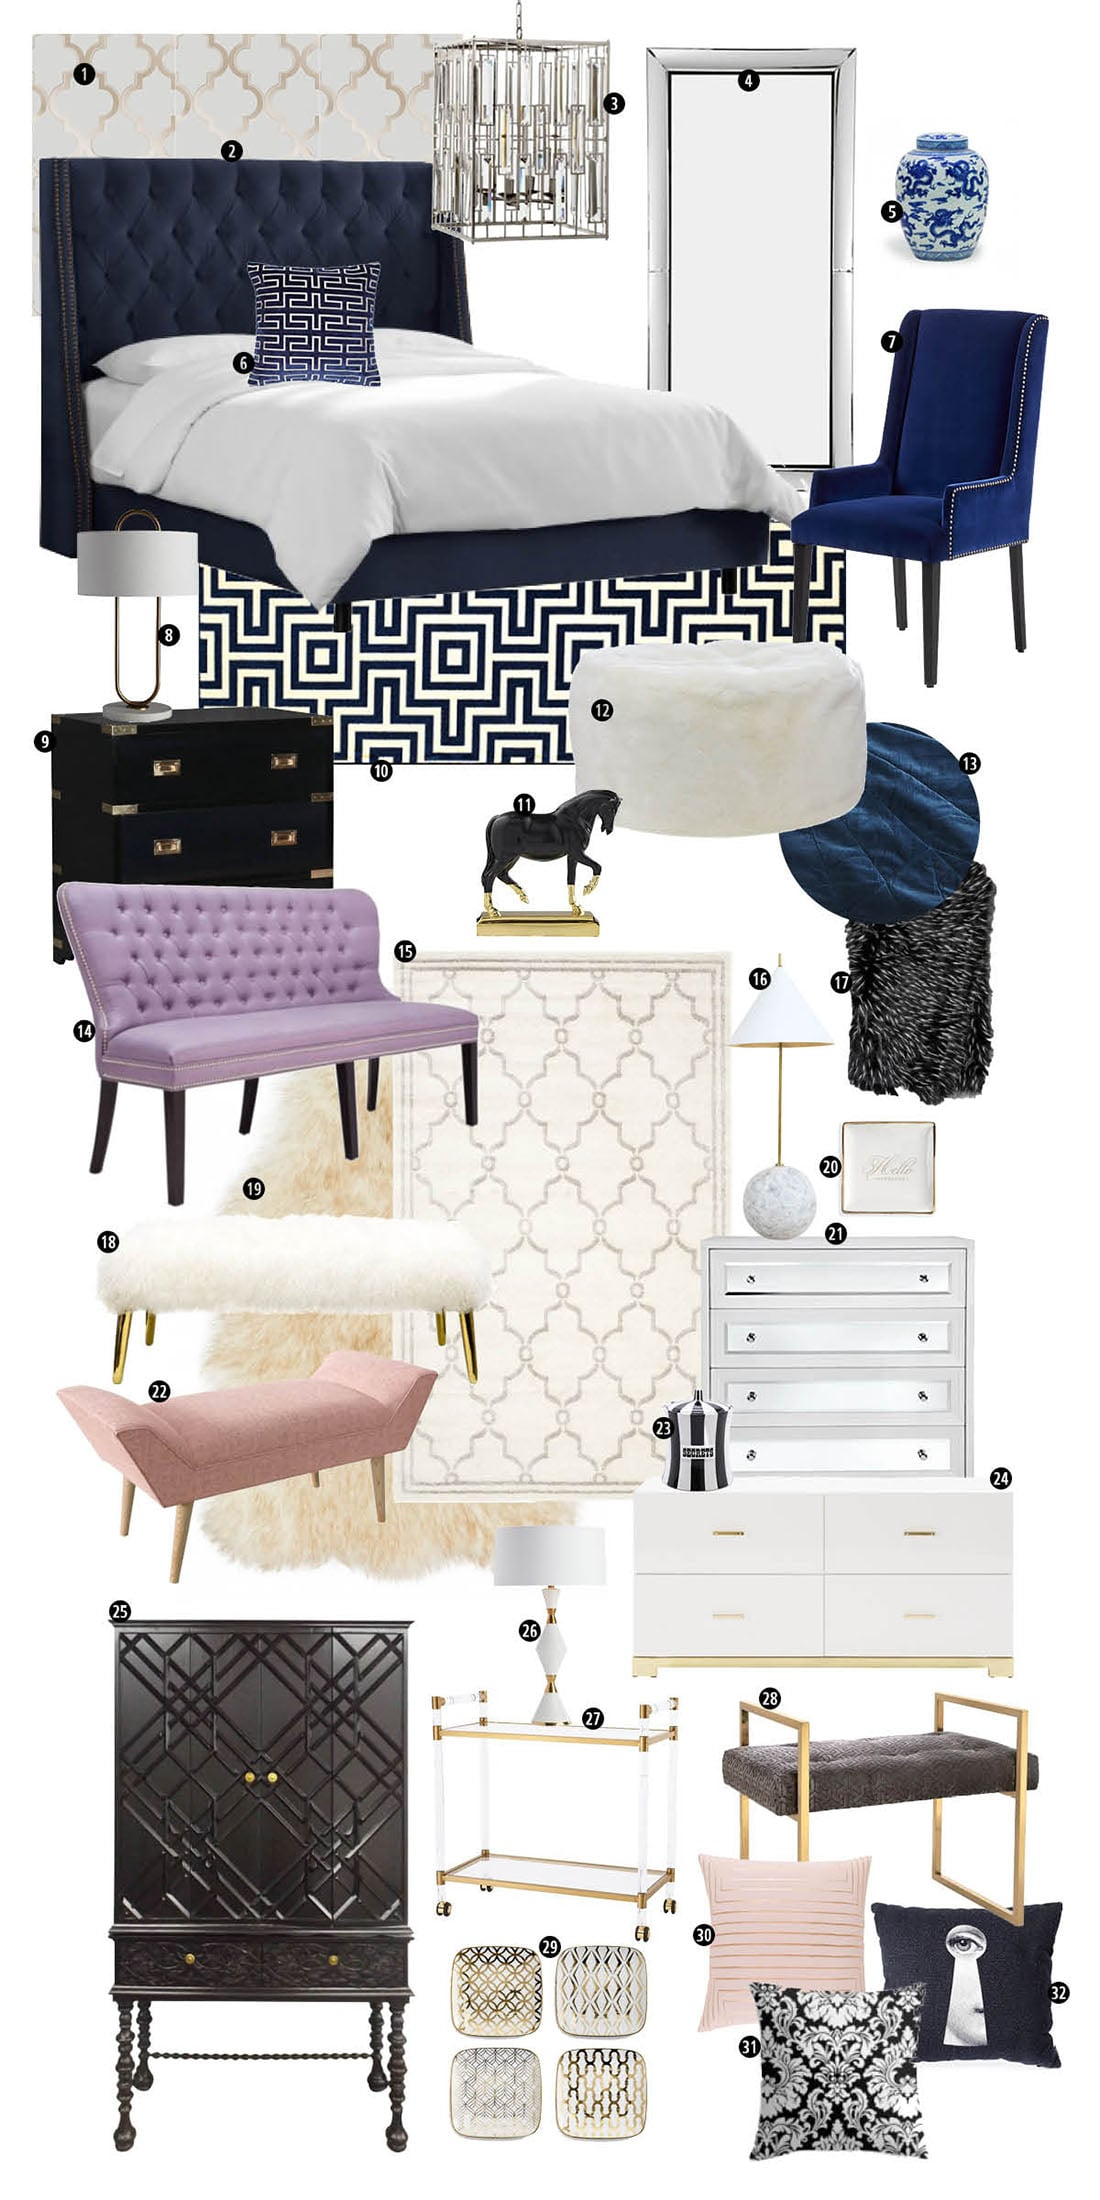 8 Signs Modern Glam Decor Is Your Signature Style Little Gold Pixel for 12 Awesome Concepts of How to Makeover Modern Glam Bedroom